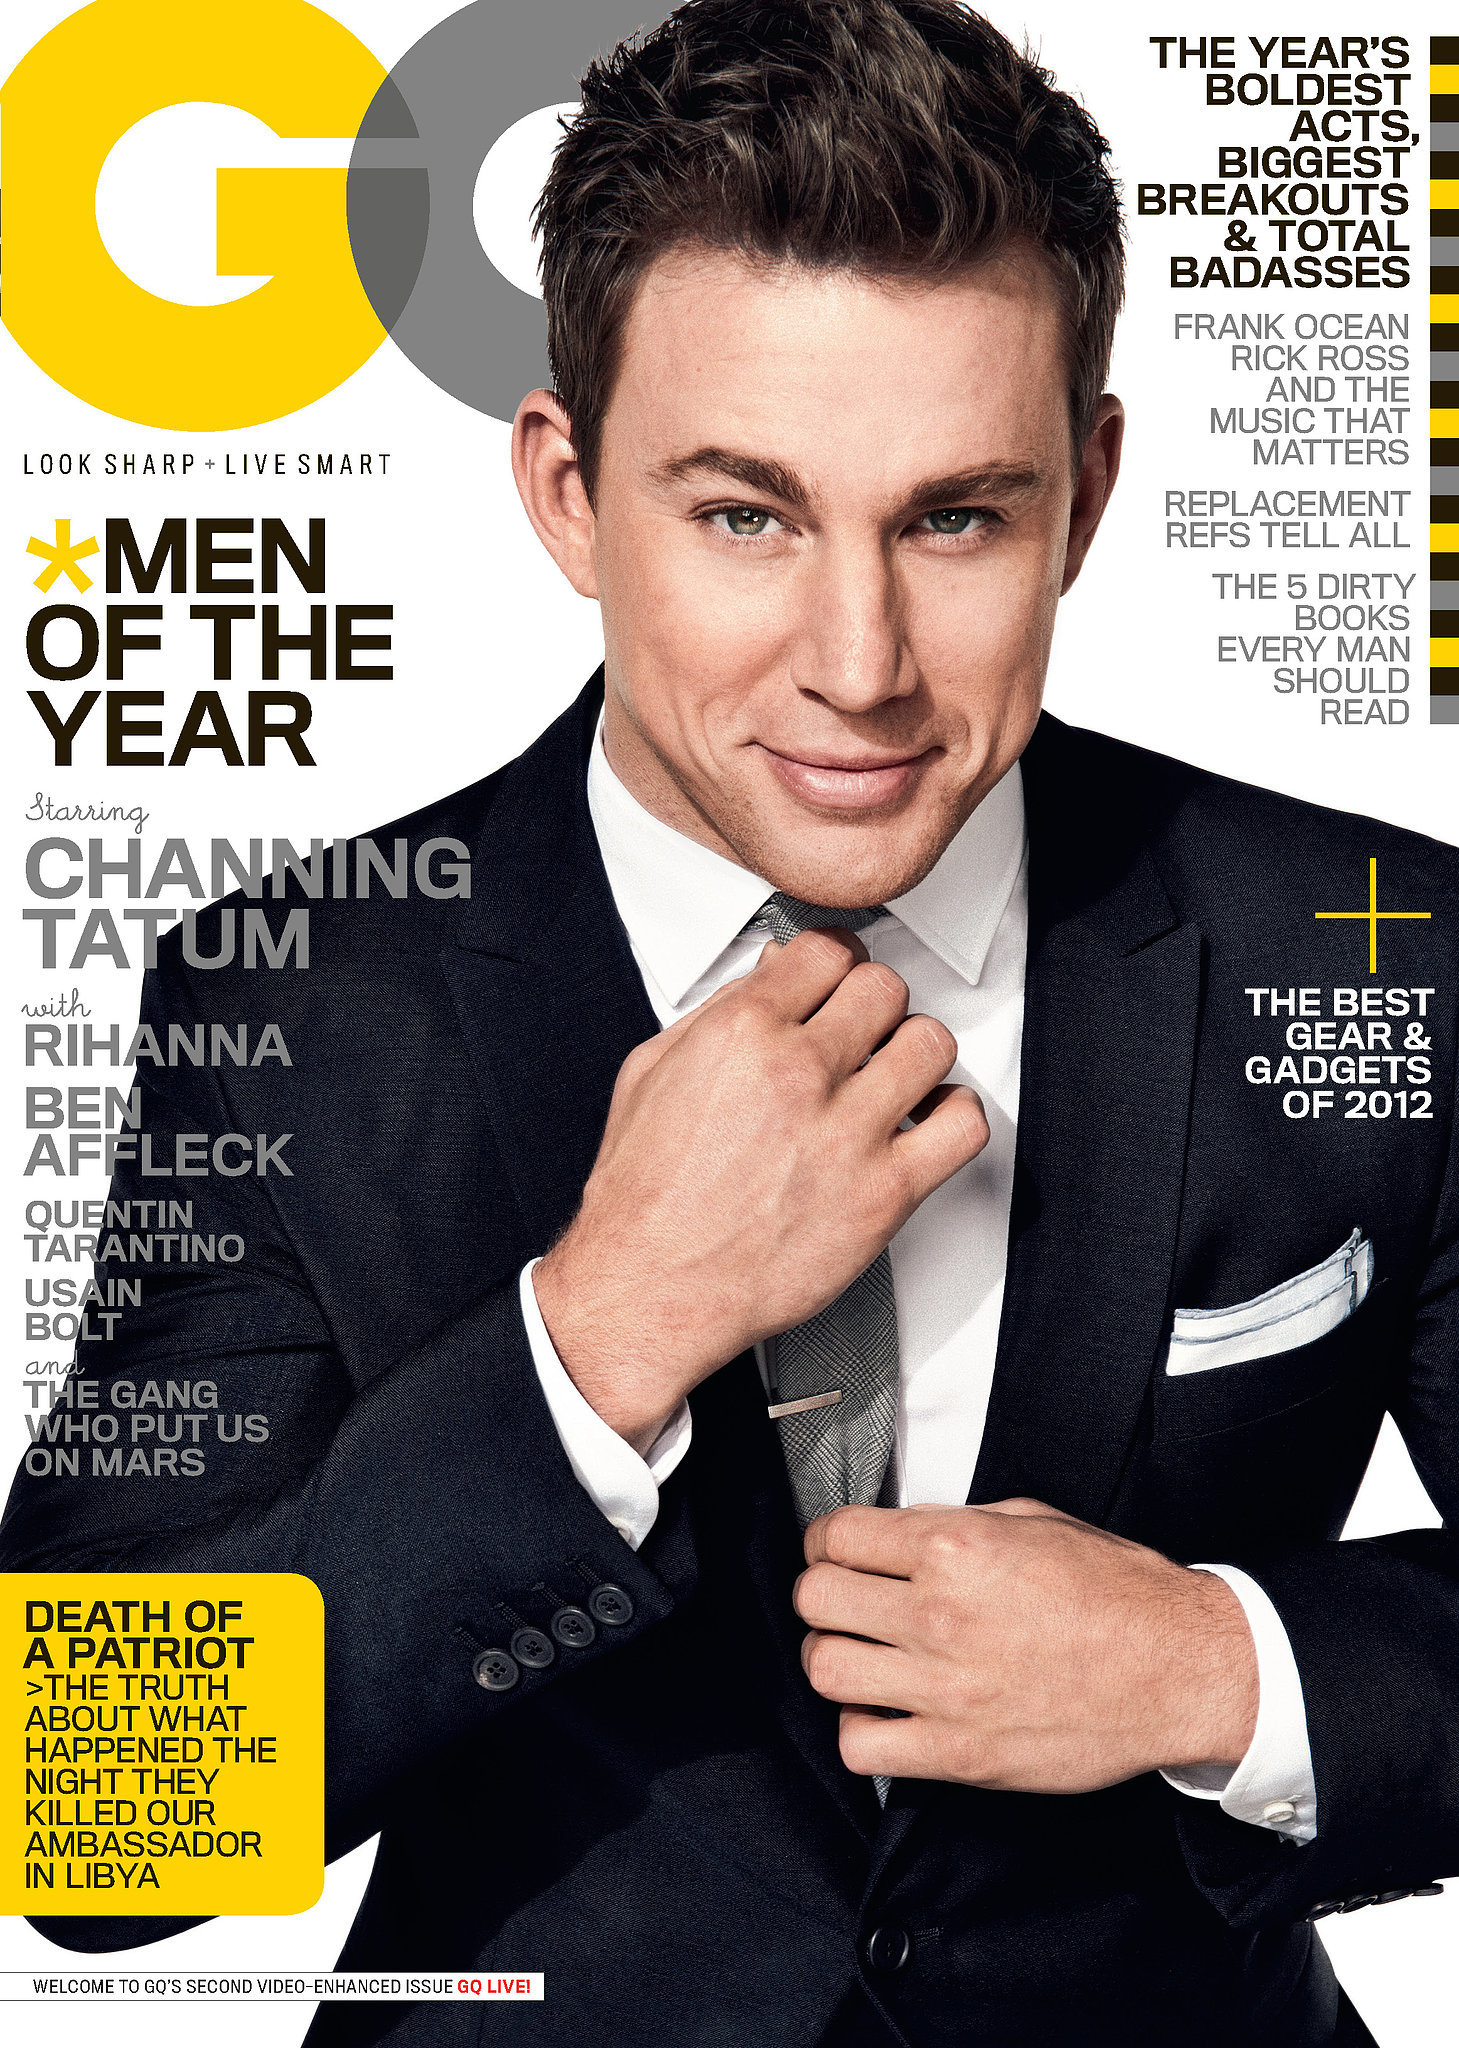 Channing posed for the cover of GQ's December 2012 issue. Source: GQ